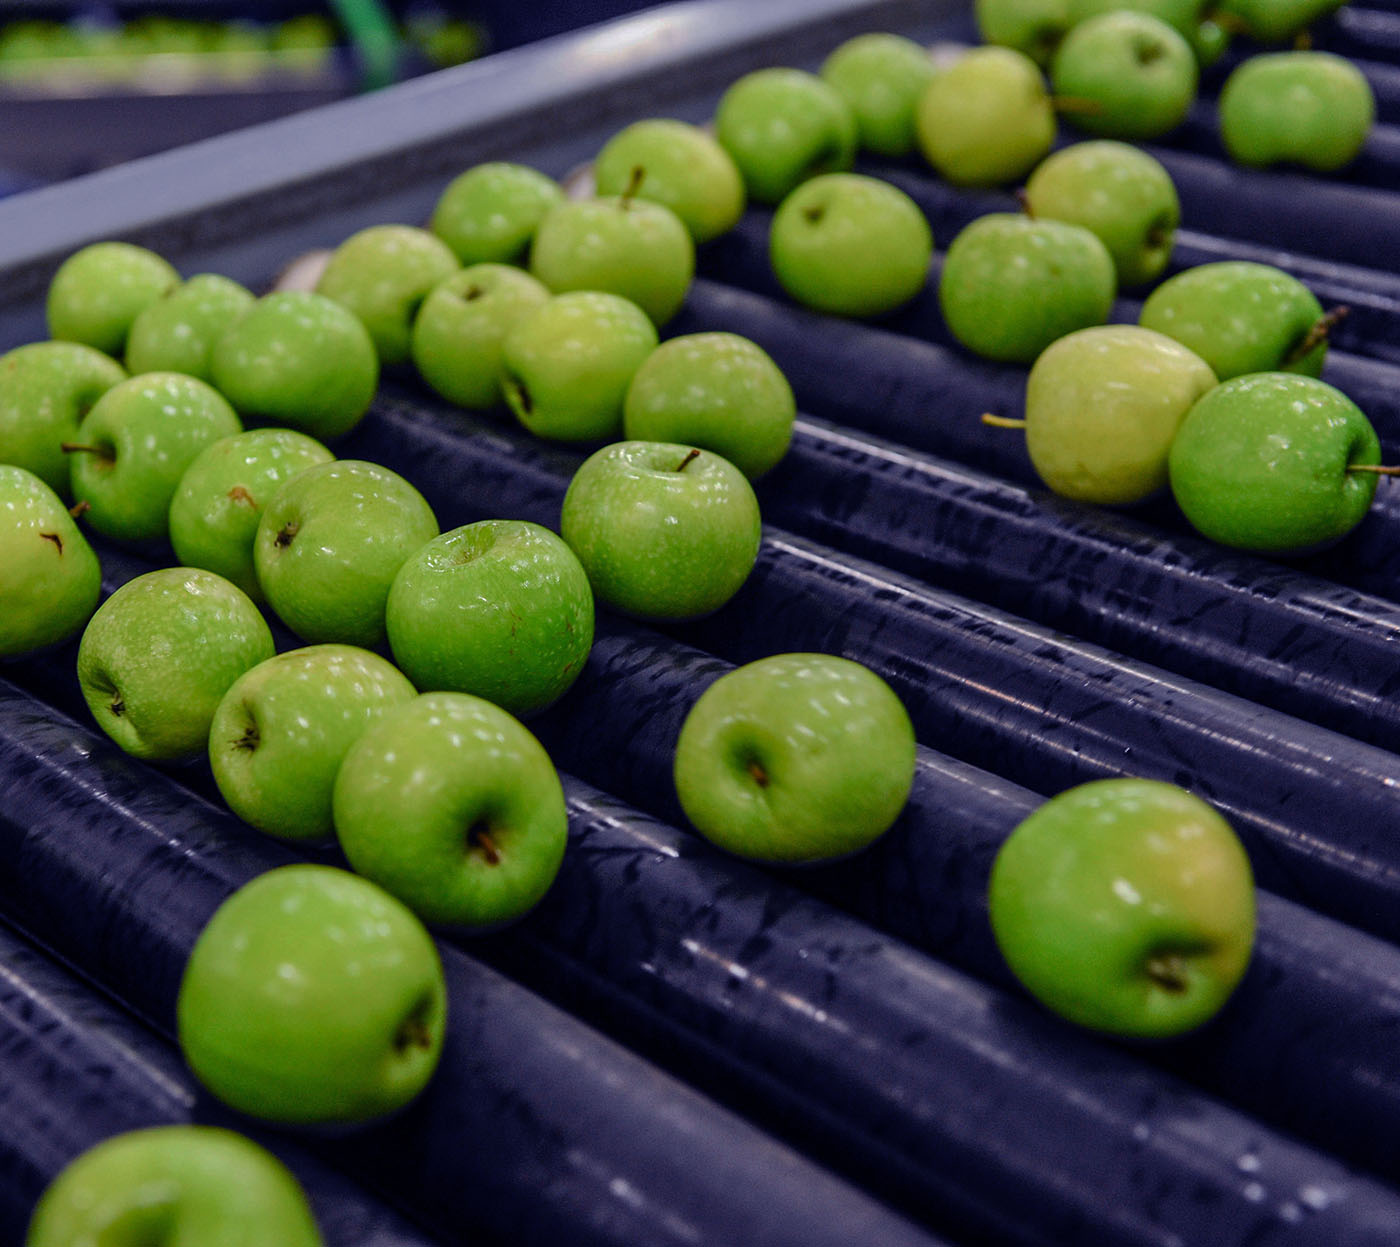 Apples on manufacturing production line